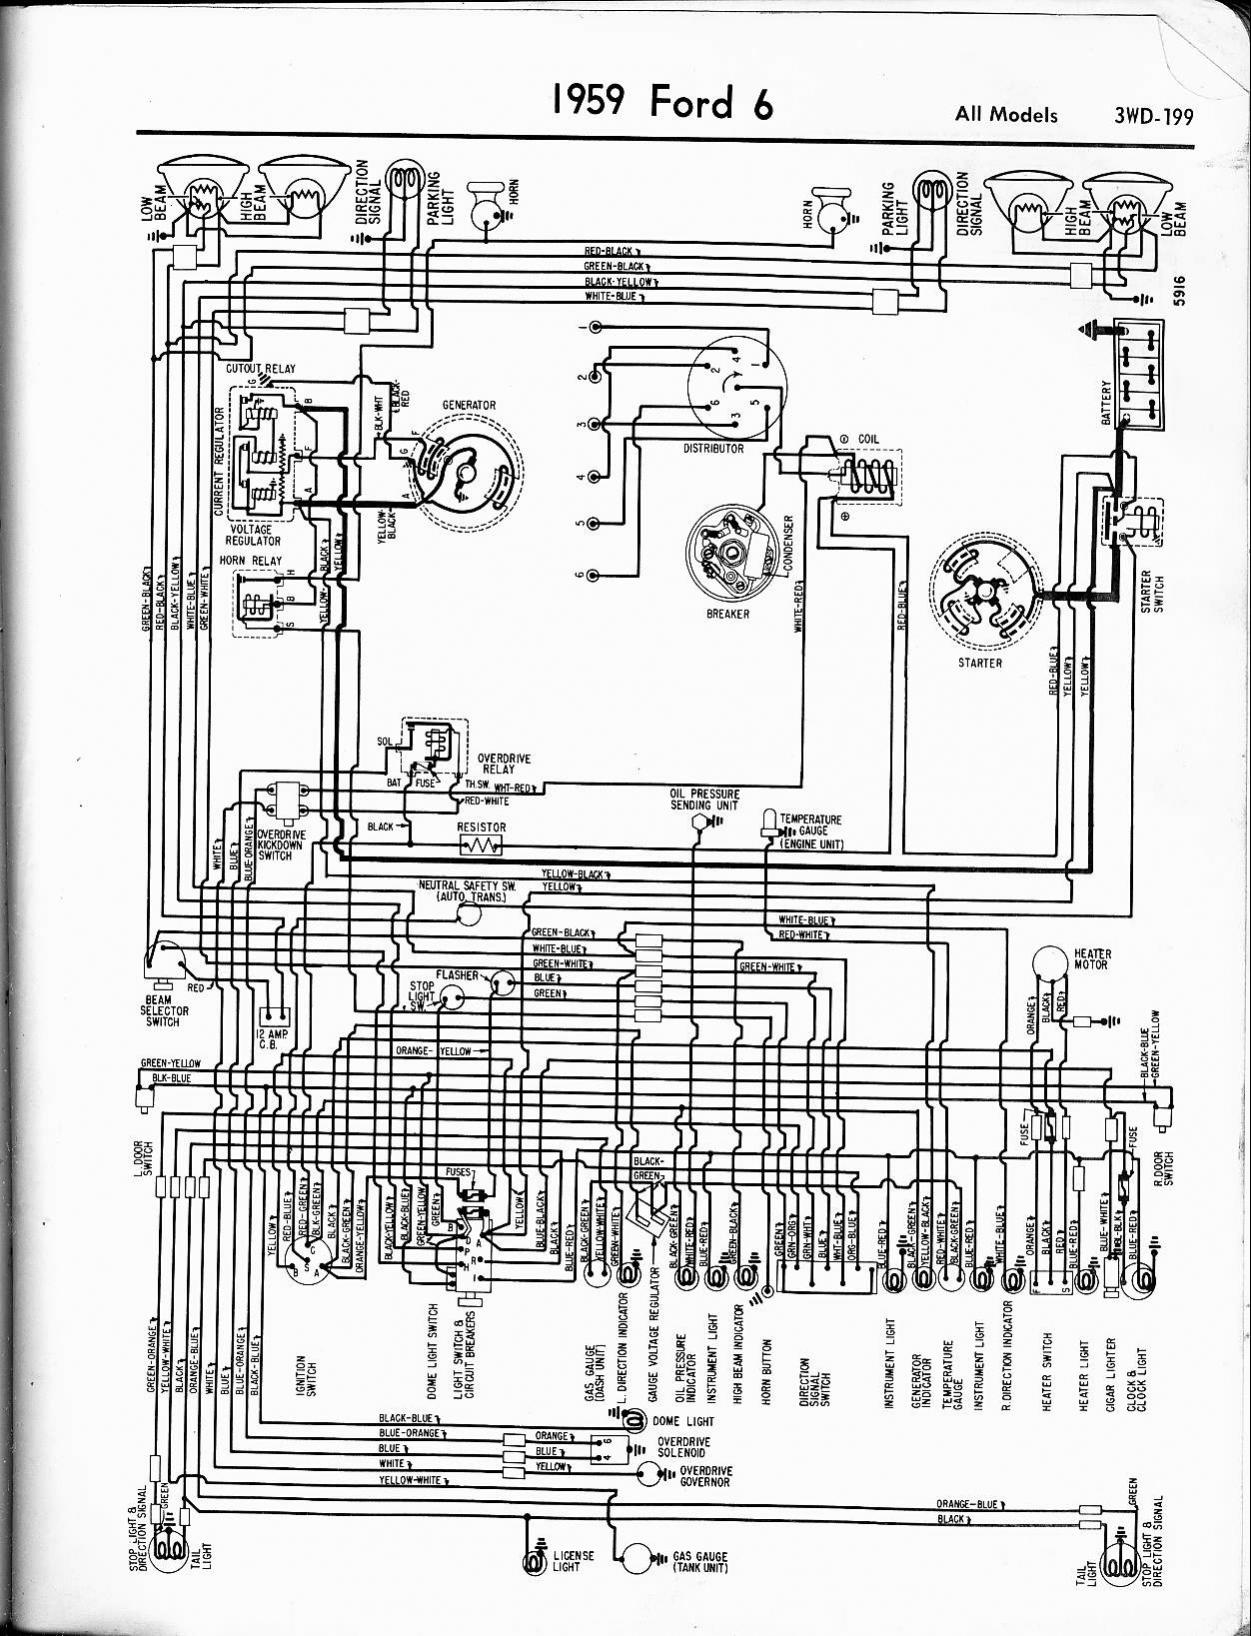 1958 ford ranchero headlight switch wiring diagram wiring diagram user 1958 ford headlight switch wiring diagram data diagram schematic 1958 ford ranchero headlight switch wiring diagram